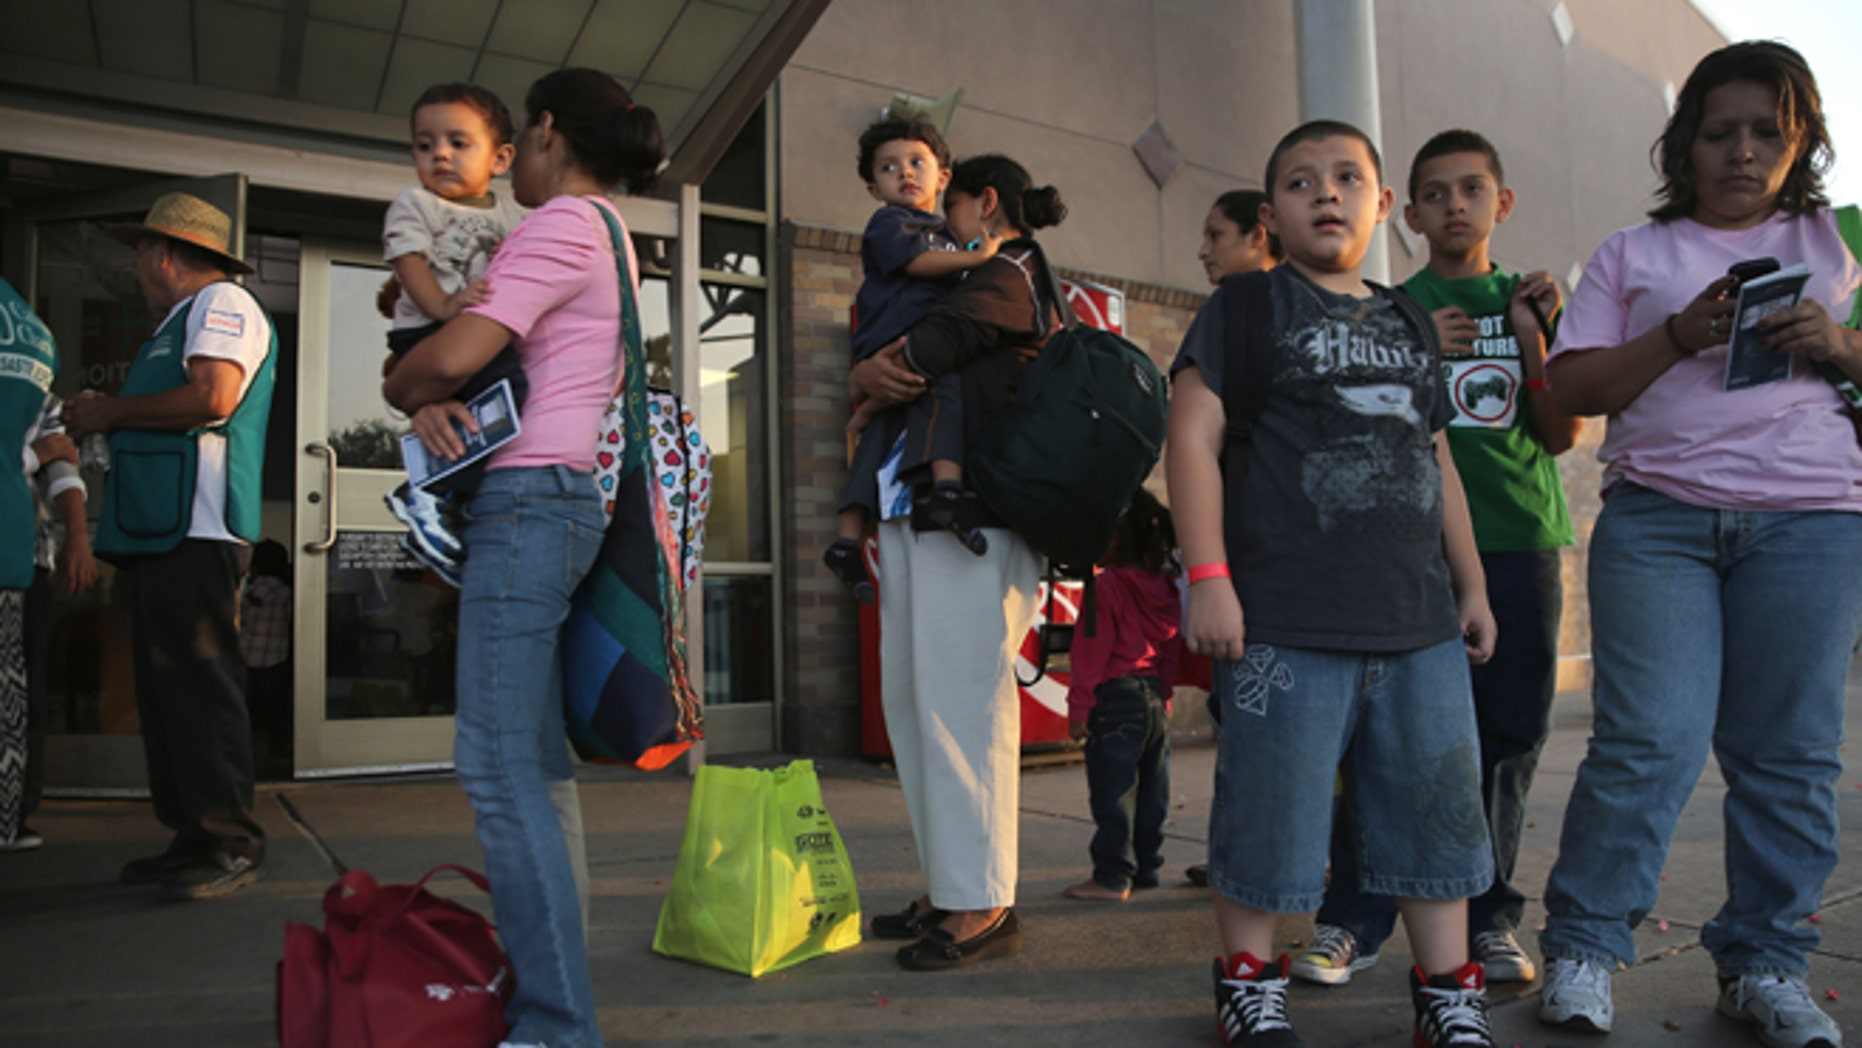 MCALLEN, TX - JULY 25:  Central American immigrants just released from U.S. Border Patrol detention wait at the Greyhound bus station for their continued journey to various U.S. destinations on July 25, 2014 in McAllen, Texas. (Photo by John Moore/Getty Images)